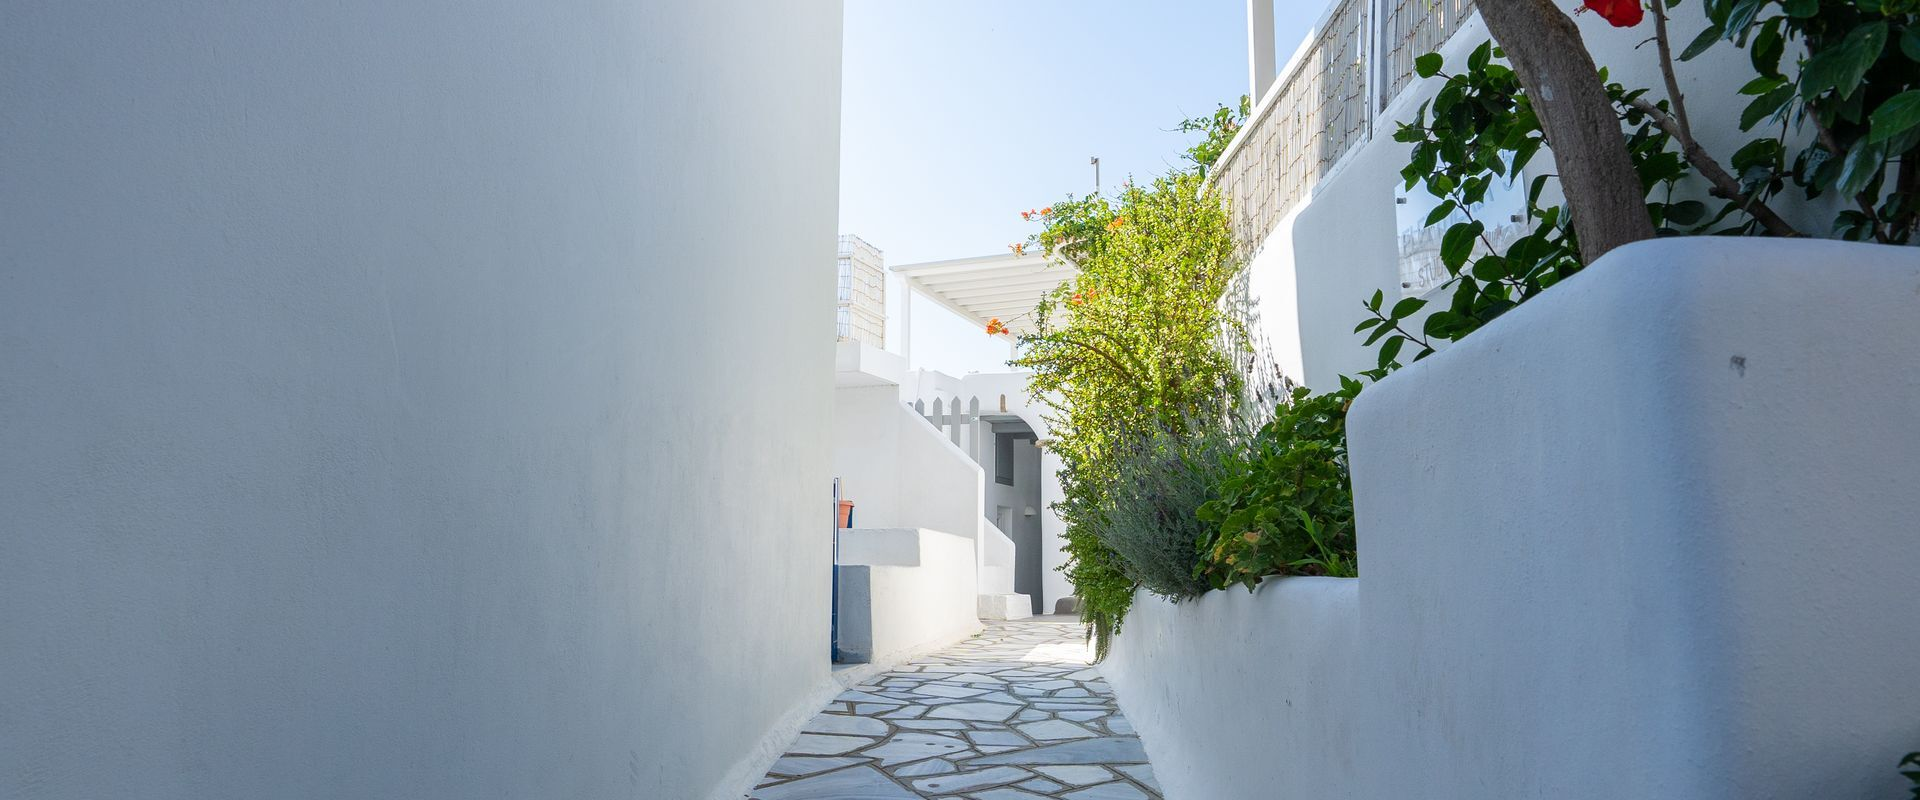 Typical cyclades architecture & aesthetics in Hora of Tinos